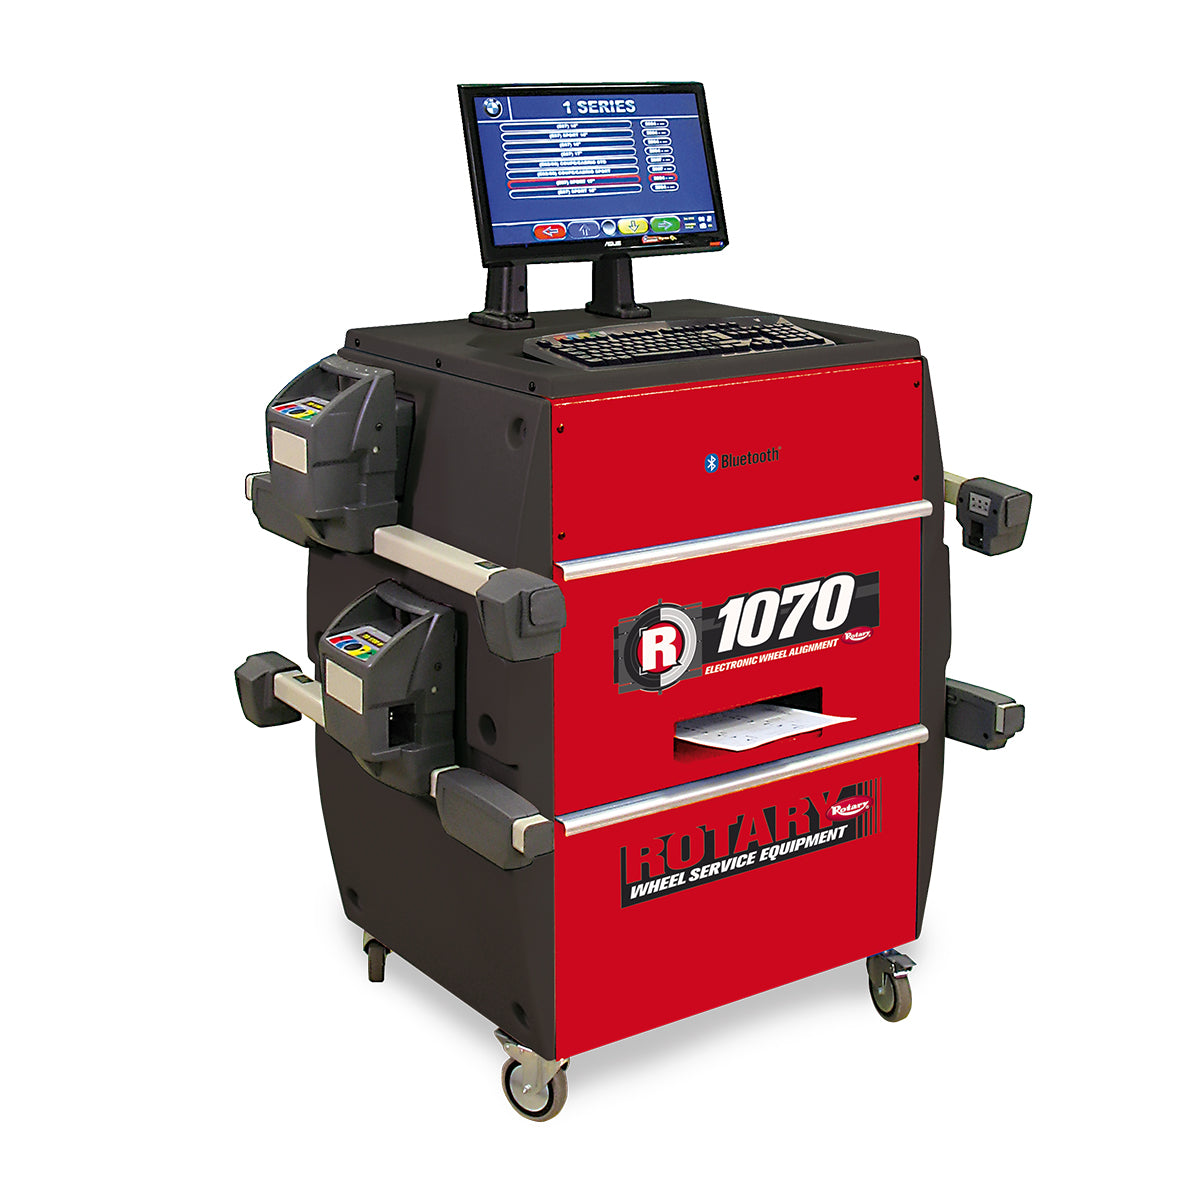 R1070 Pro CCD Wheel Alignment System